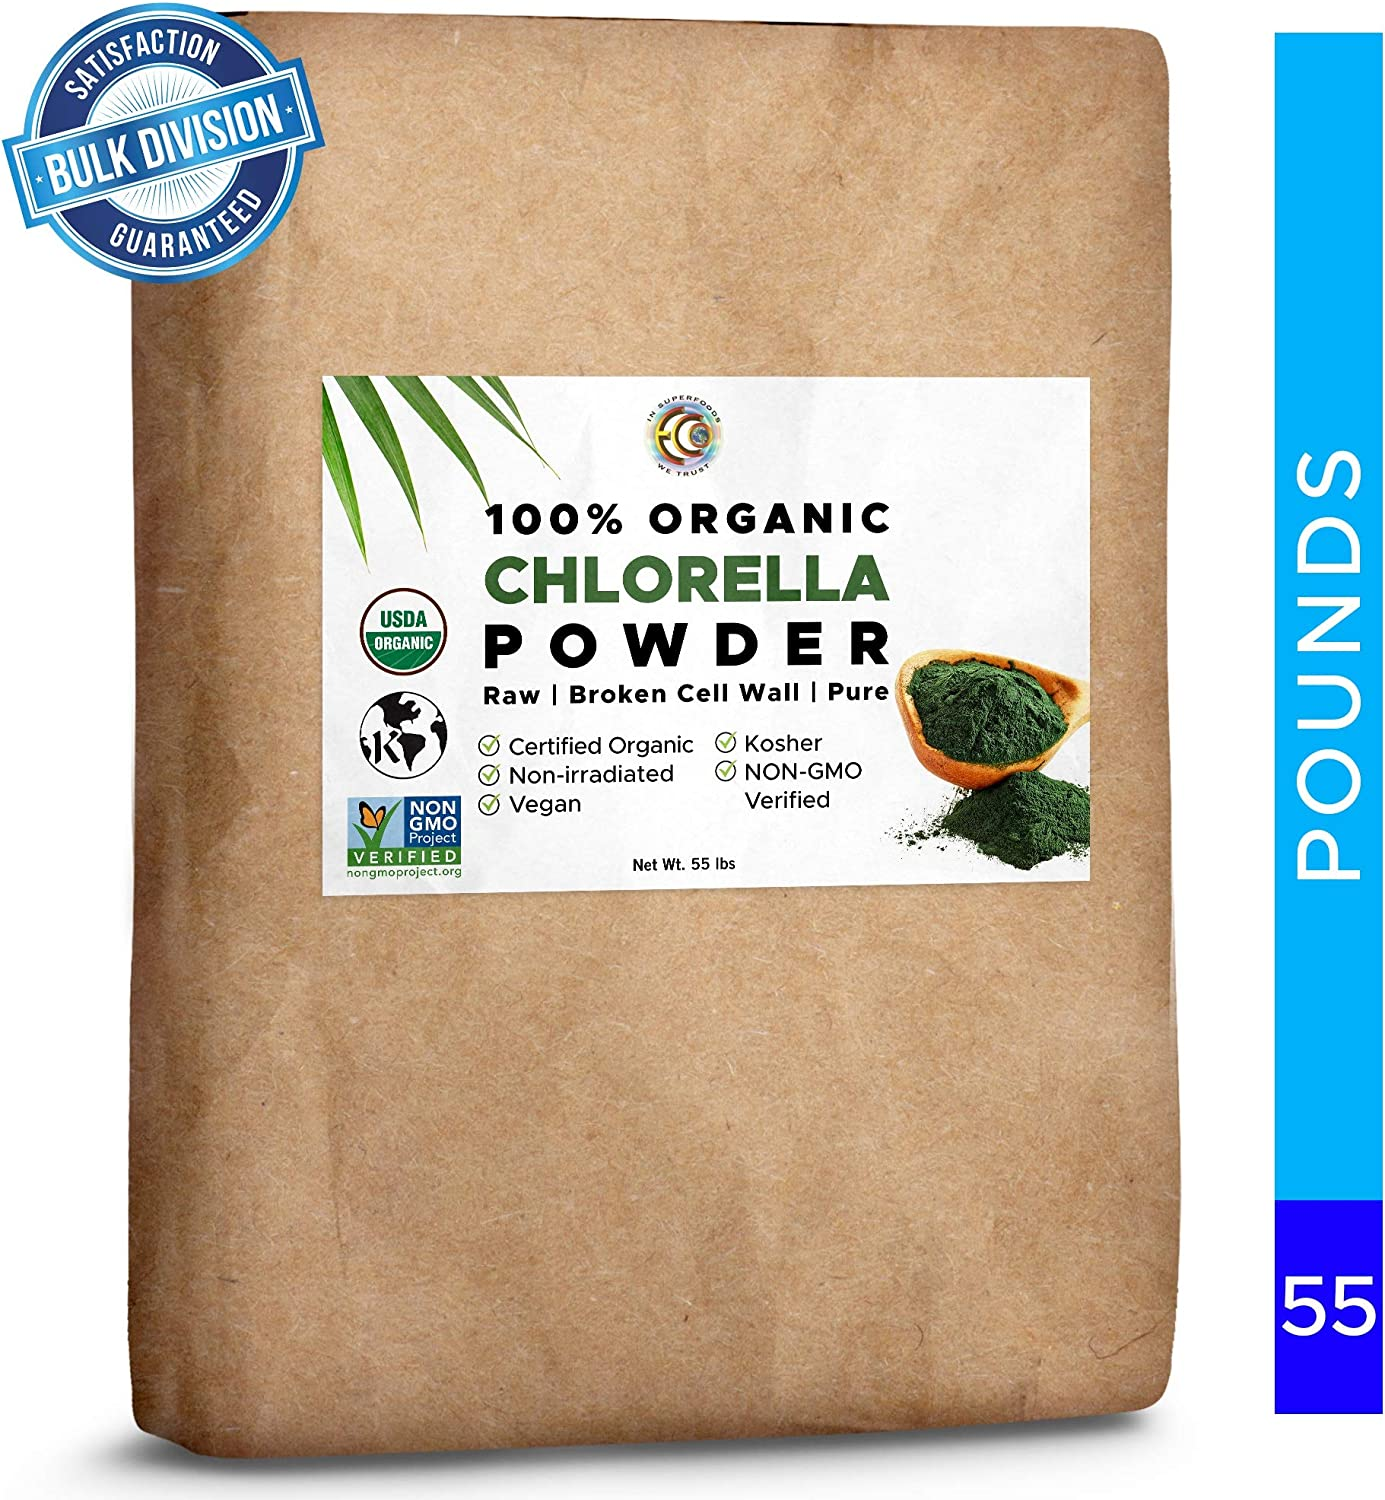 Earth Circle Organics – Certified Organic Chlorella Superfood Powder, Kosher, Cold Pressed, Broken Cell Wall, Vegan, High in Protein, Fiber Amino Acids 55 lbs